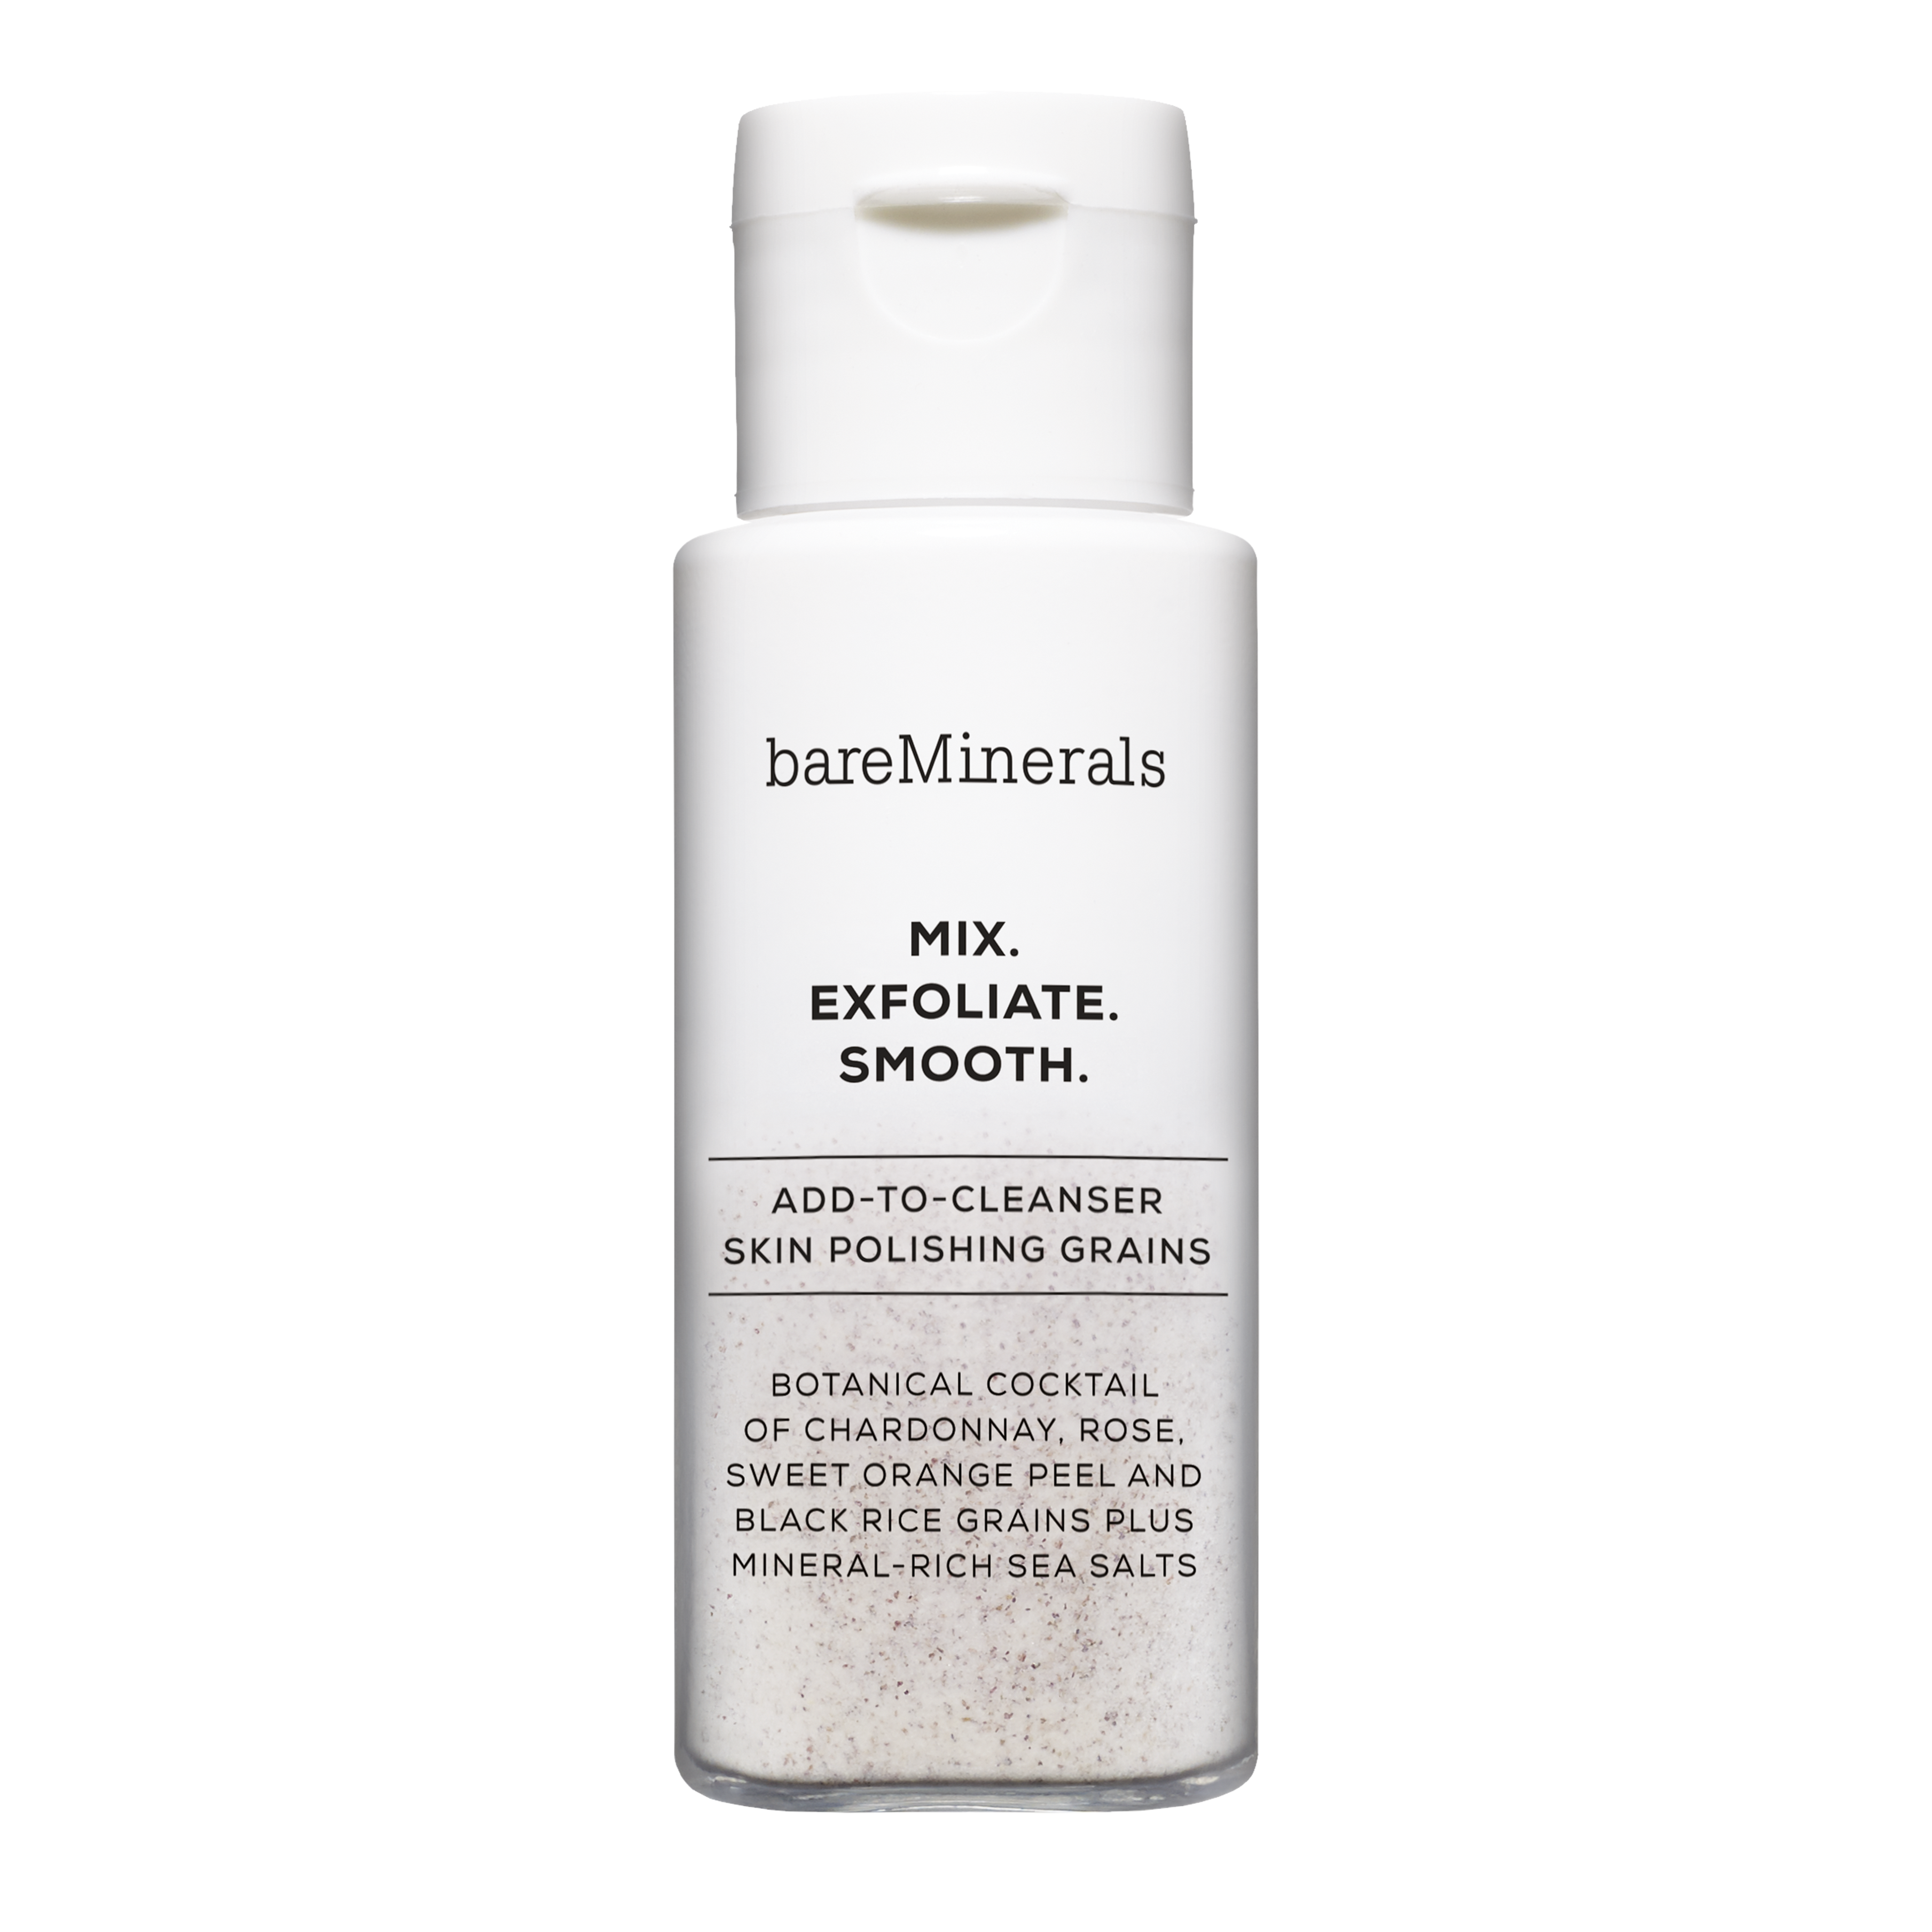 Skinsorials Mix. Exfoliate. Smooth. Add-To-Cleanser Skin Polishing